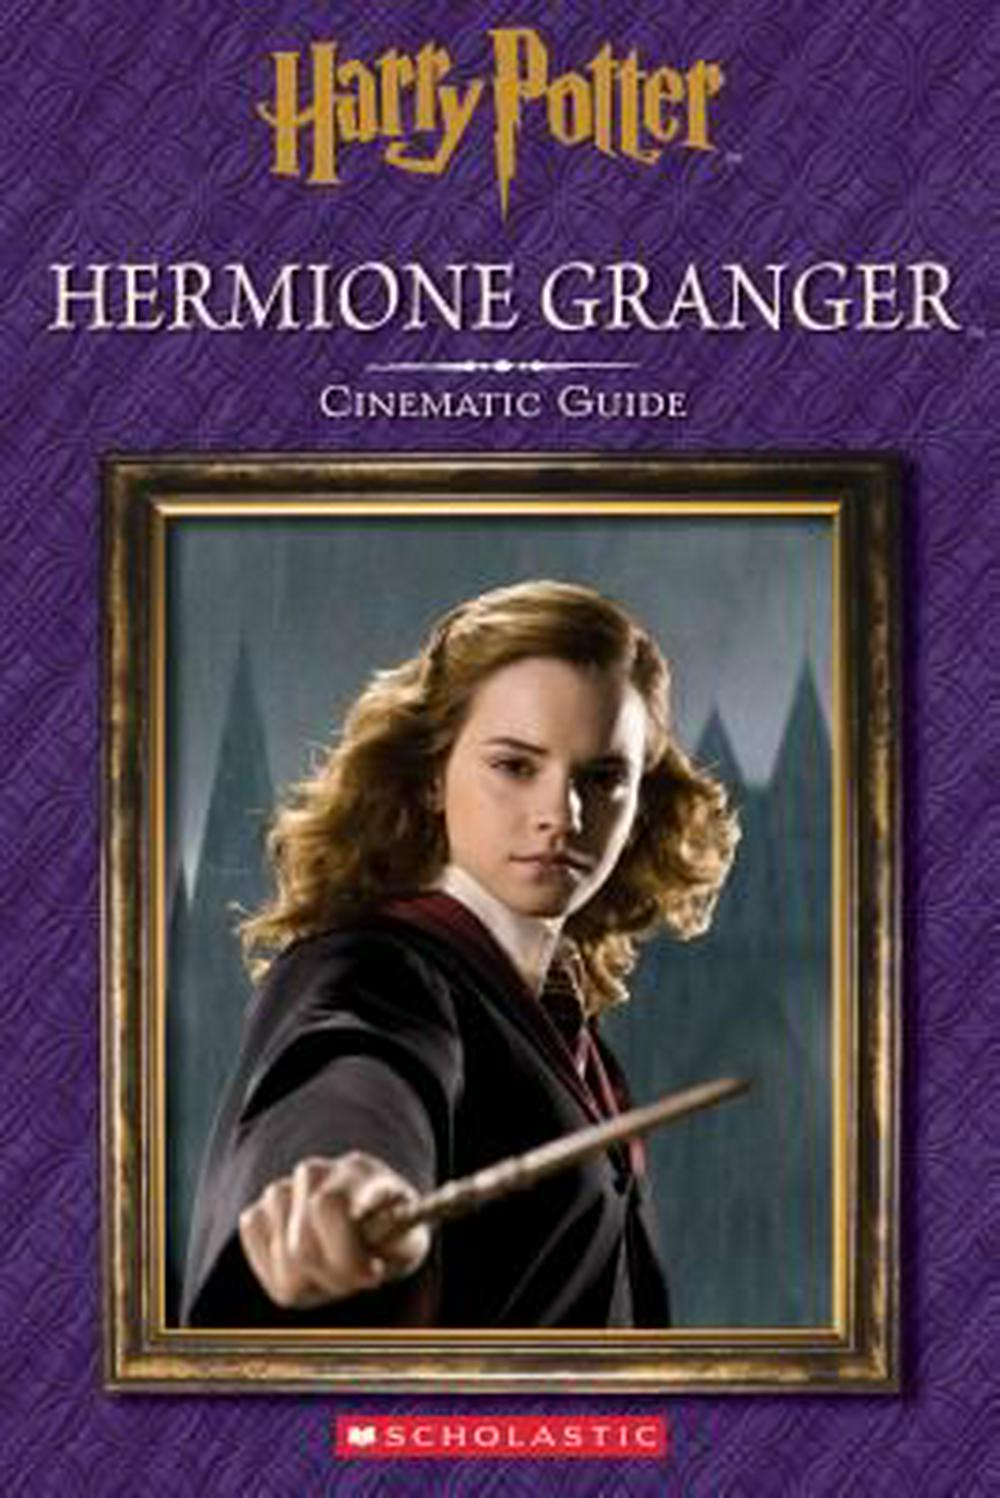 Harry PotterHermione Granger: Cinematic Guide